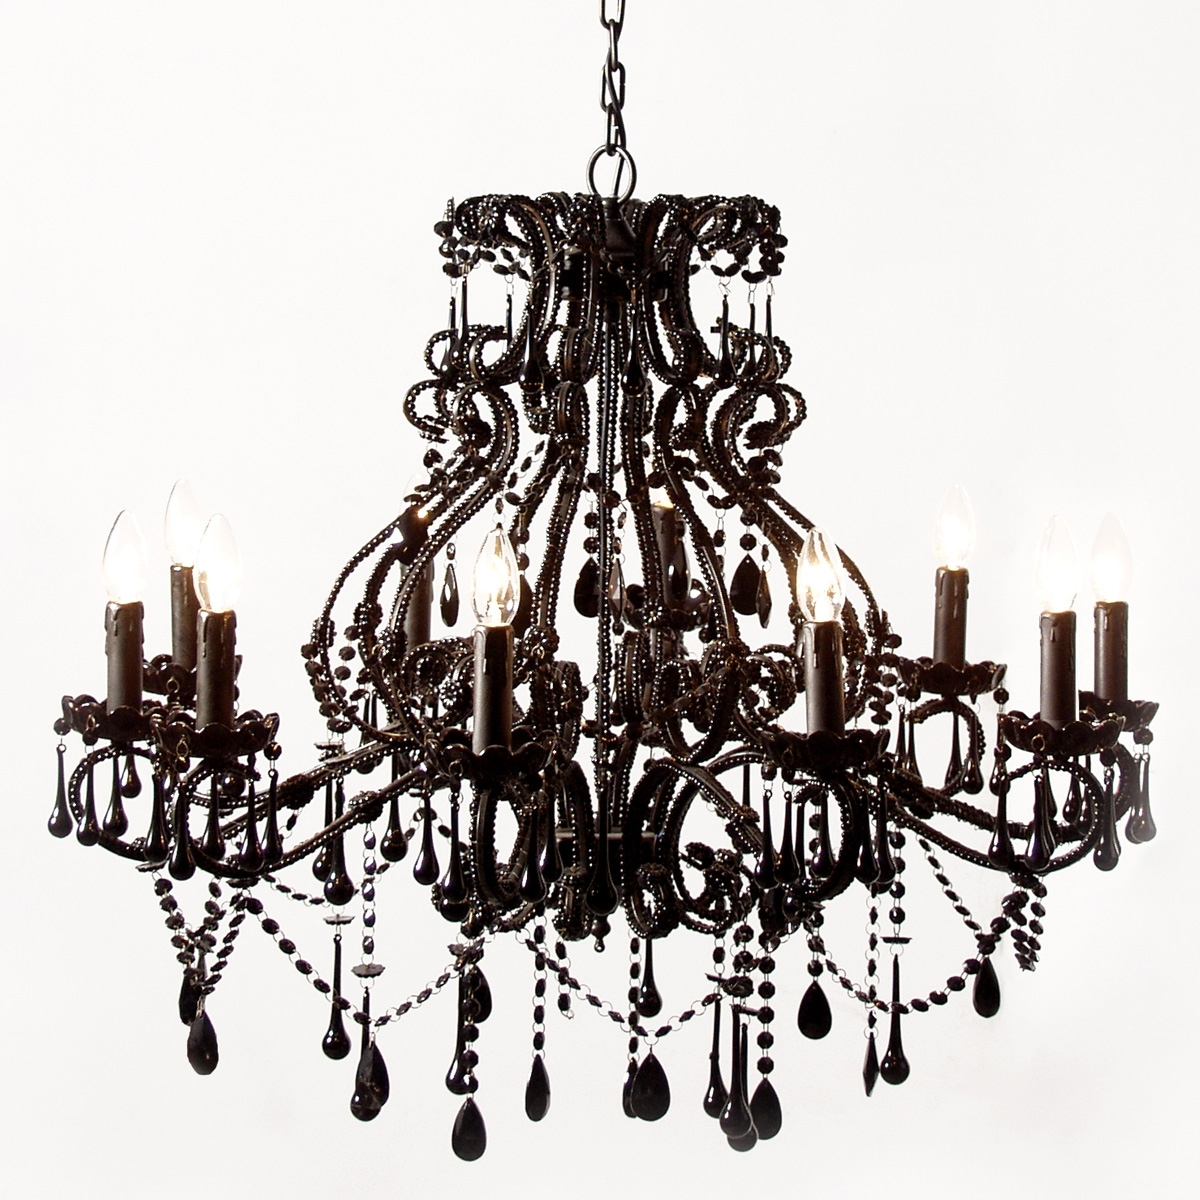 Vintage Black Chandelier For Well Known Vintage Black Chandelier For Bedroom Image 4 – Howiezine (View 4 of 15)